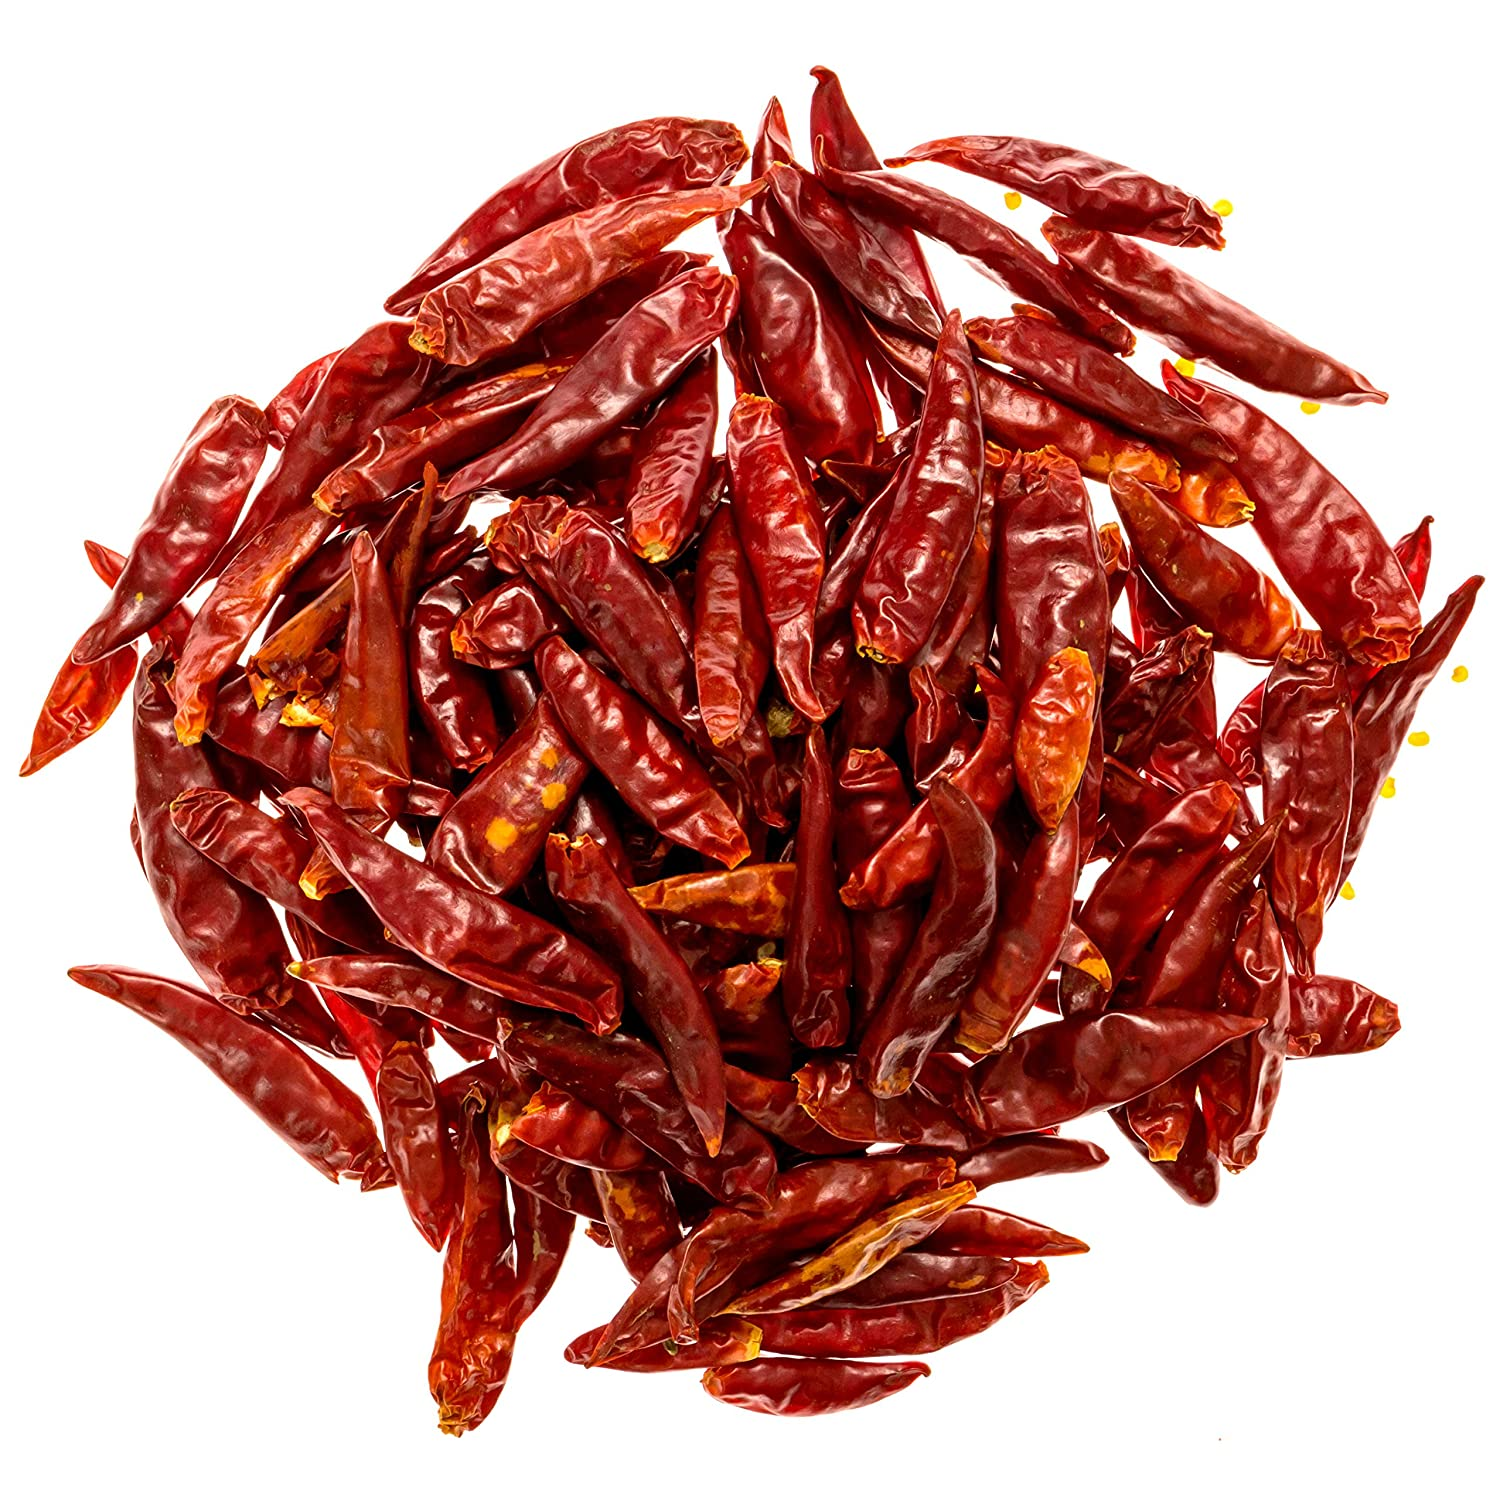 Amazon Com Soeos Szechuan Dried Chili Dry Szechuan Pepper Dry Chile Peppers Sichuan Pepper Dried Red Chilies 4oz Very Mild Spicy Grocery Gourmet Food